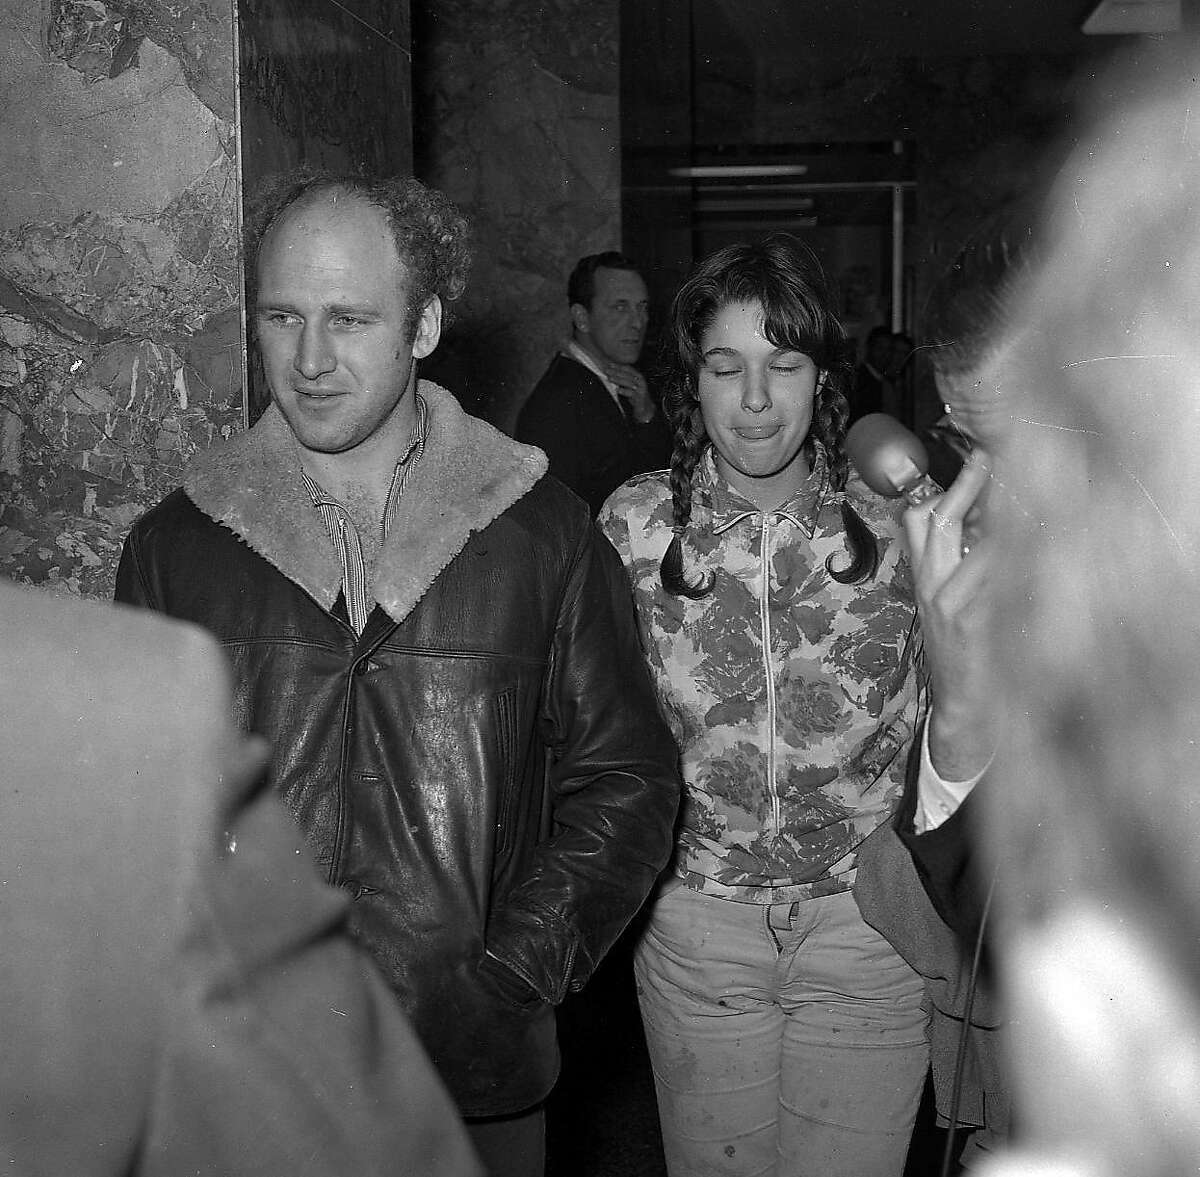 """MOUNTAIN GIRL: Carolyn Adams had a child with Ken Kesey and later married Jerry Garcia. She was known as """"Mountain Girl"""" and was a major personality during the Summer of Love, no doubt helped by being a major figure in Tom Wolfe's stories about the acid tests. Here she is with Kesey after they got busted for pot in 1966."""